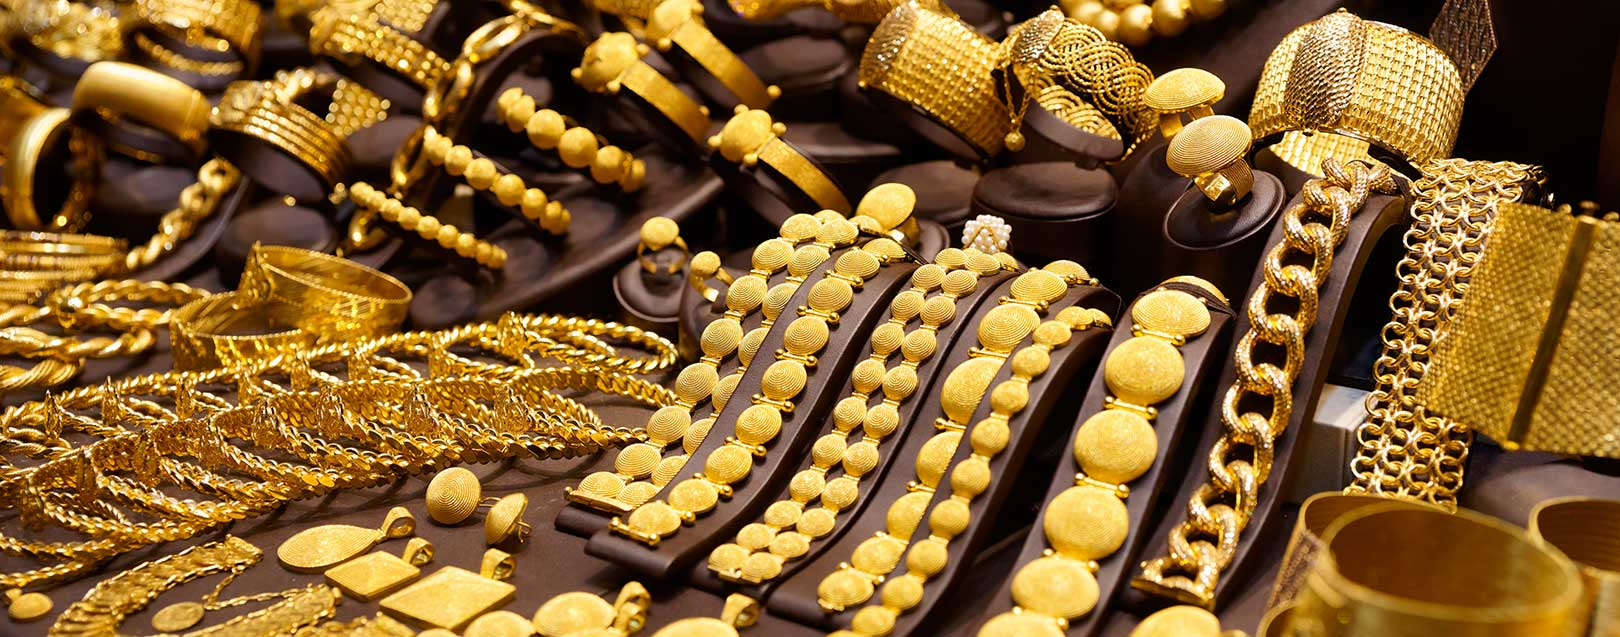 Rajesh Exports wants Govt clearance to ship gold jewellery above 22-carat